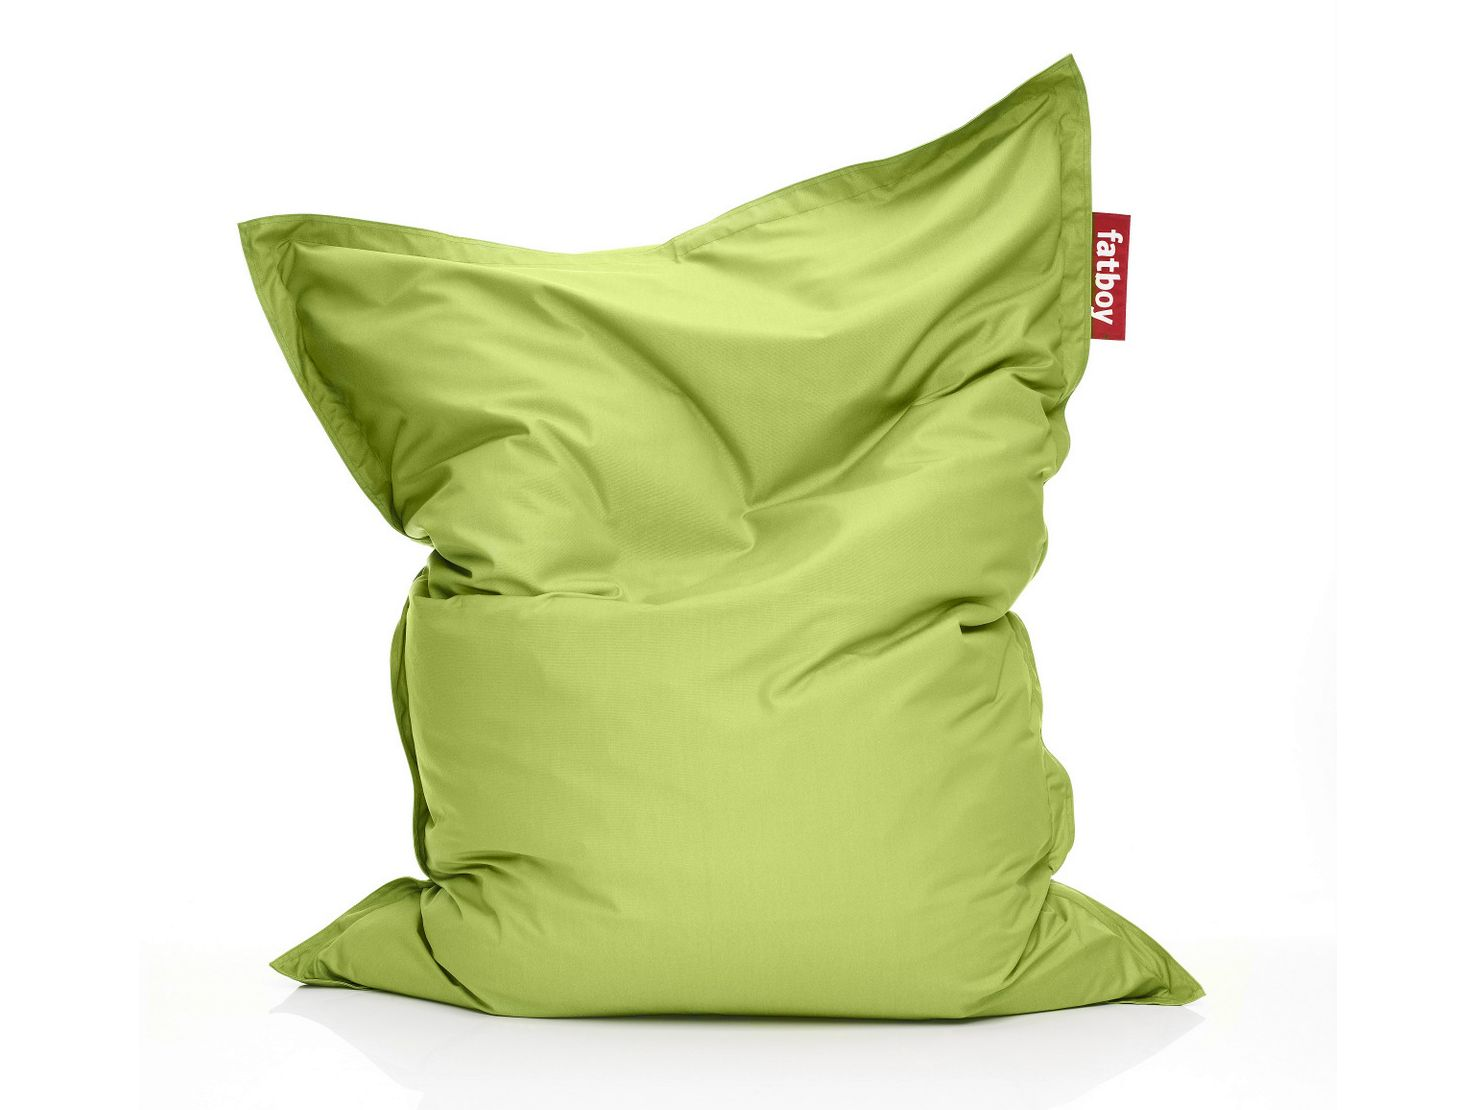 Acrylic Fabric Bean Bag ORIGINAL OUTDOOR   Fatboy Italia